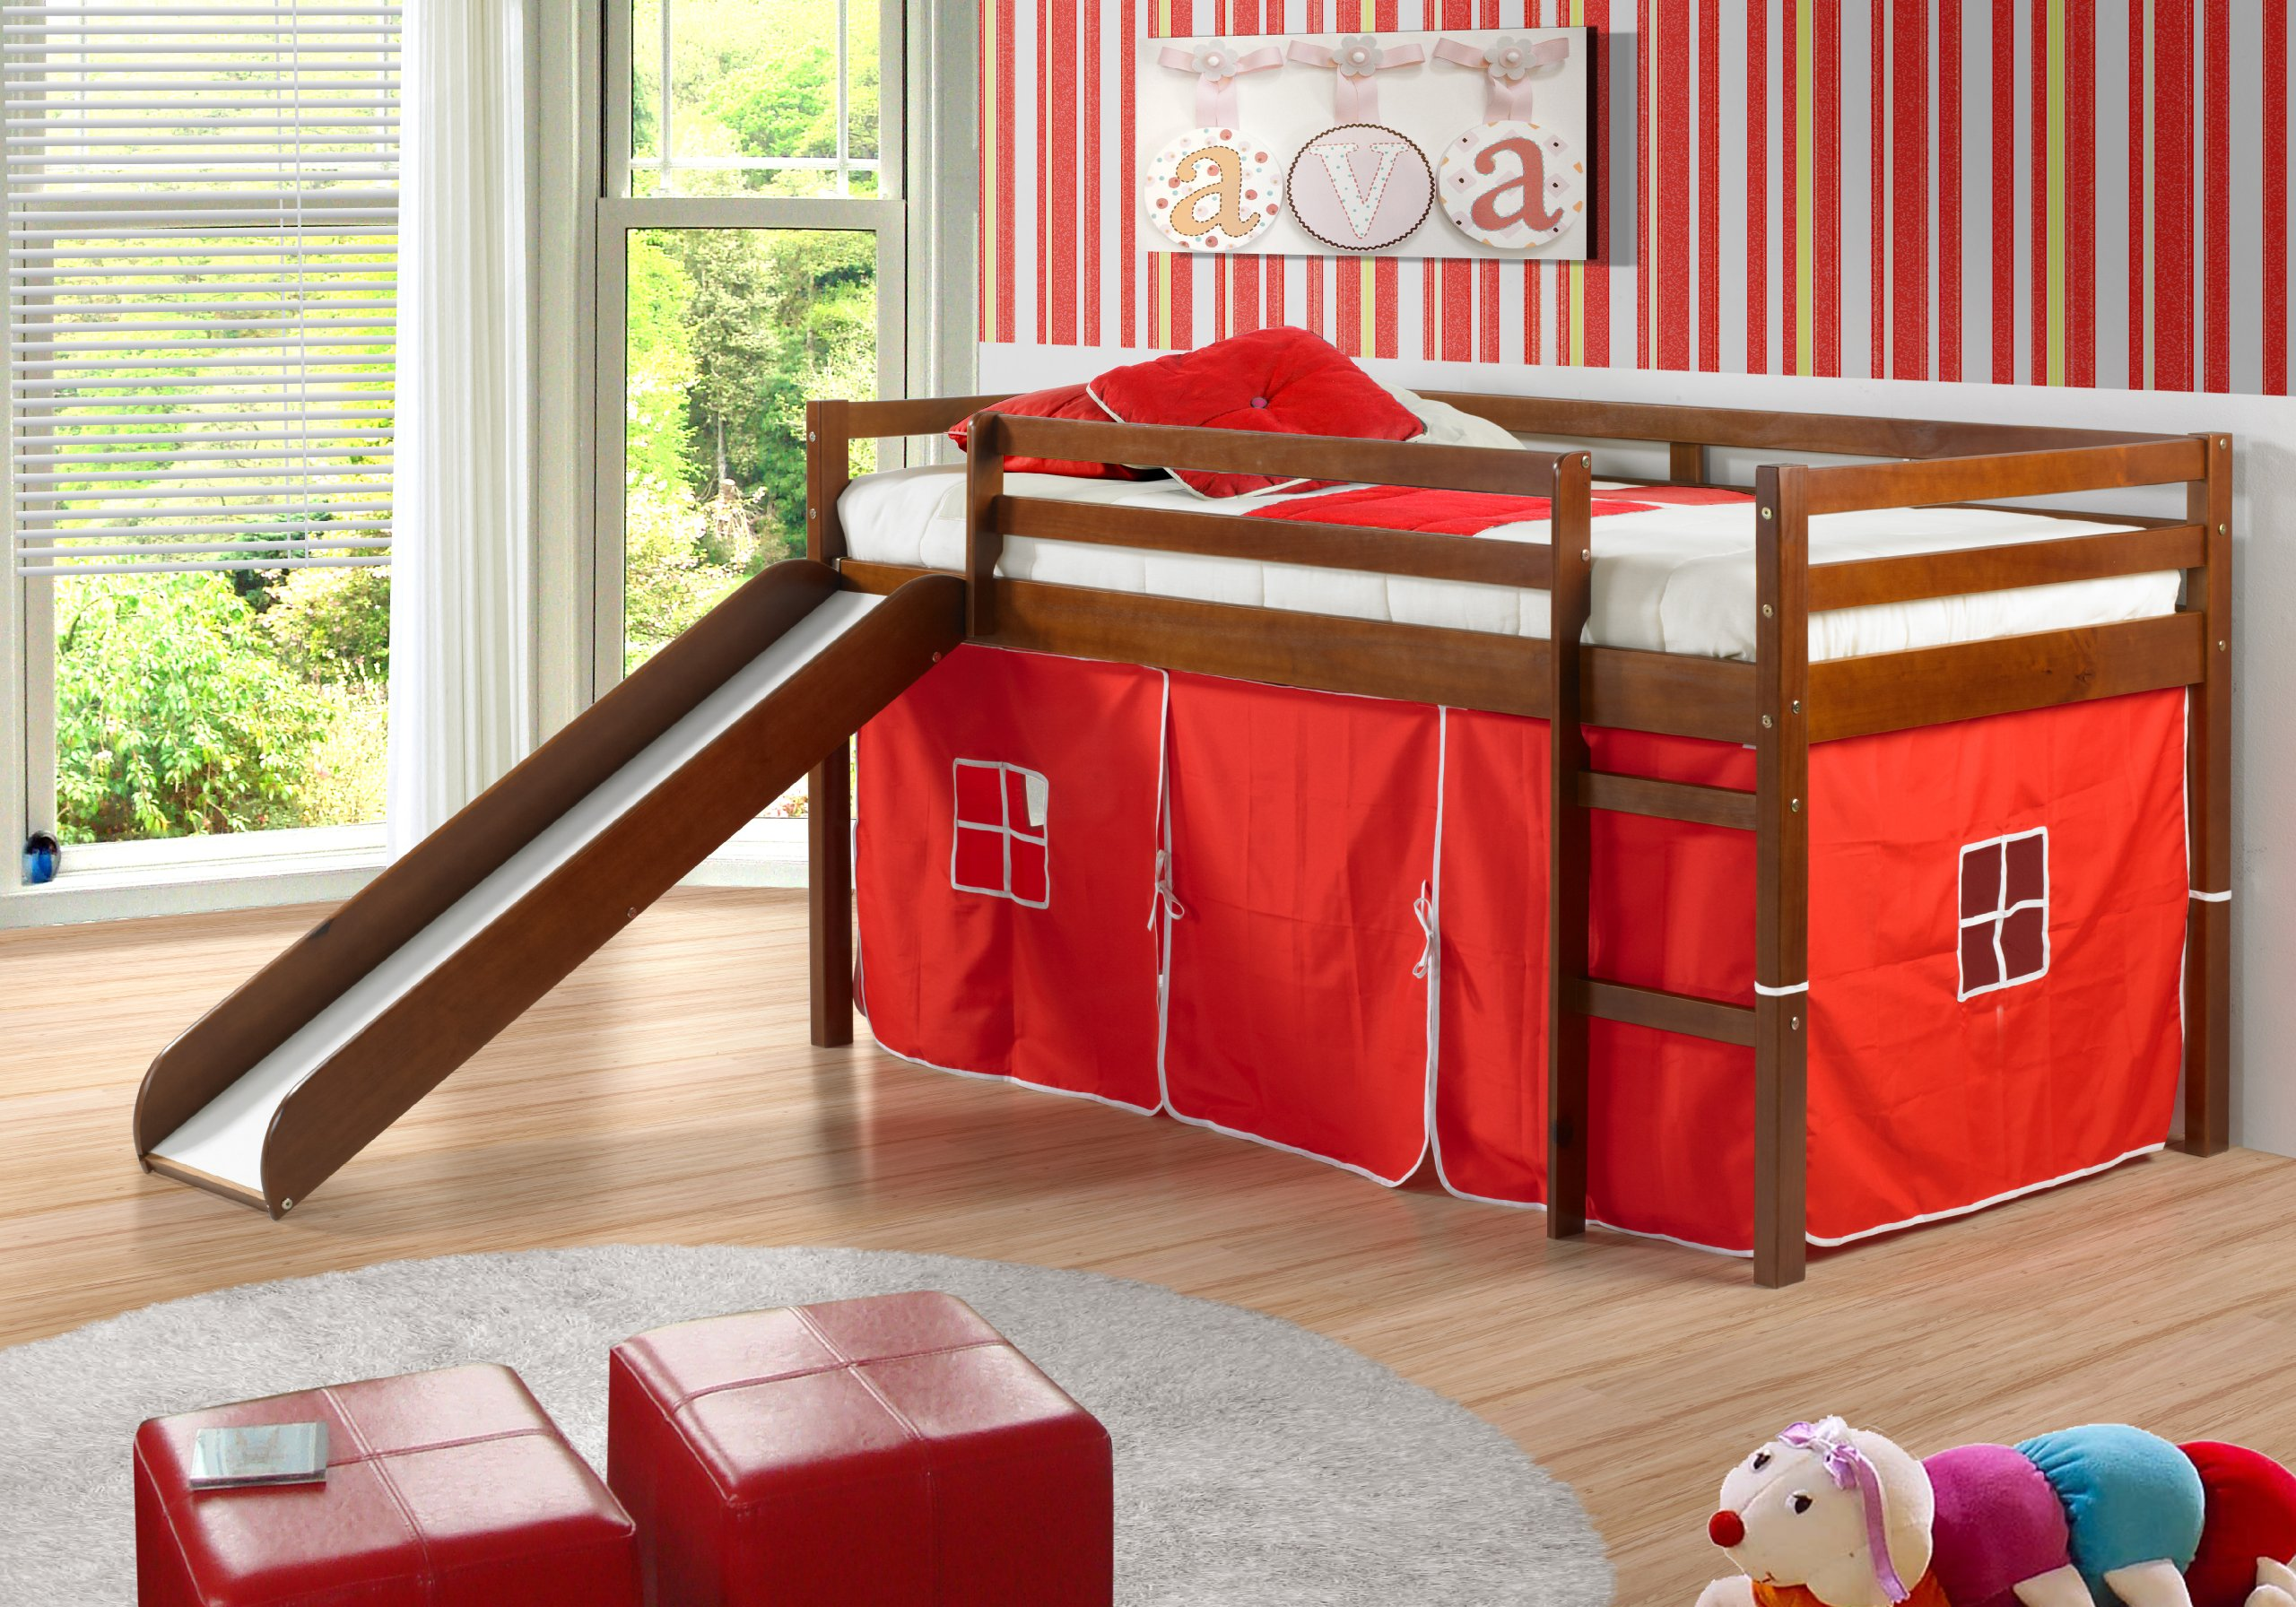 Delicieux Red Cushions And Wooden Slide Completing Appealing Boys Bunk Beds Inside  Spacious Bedroom With Red Ottomans